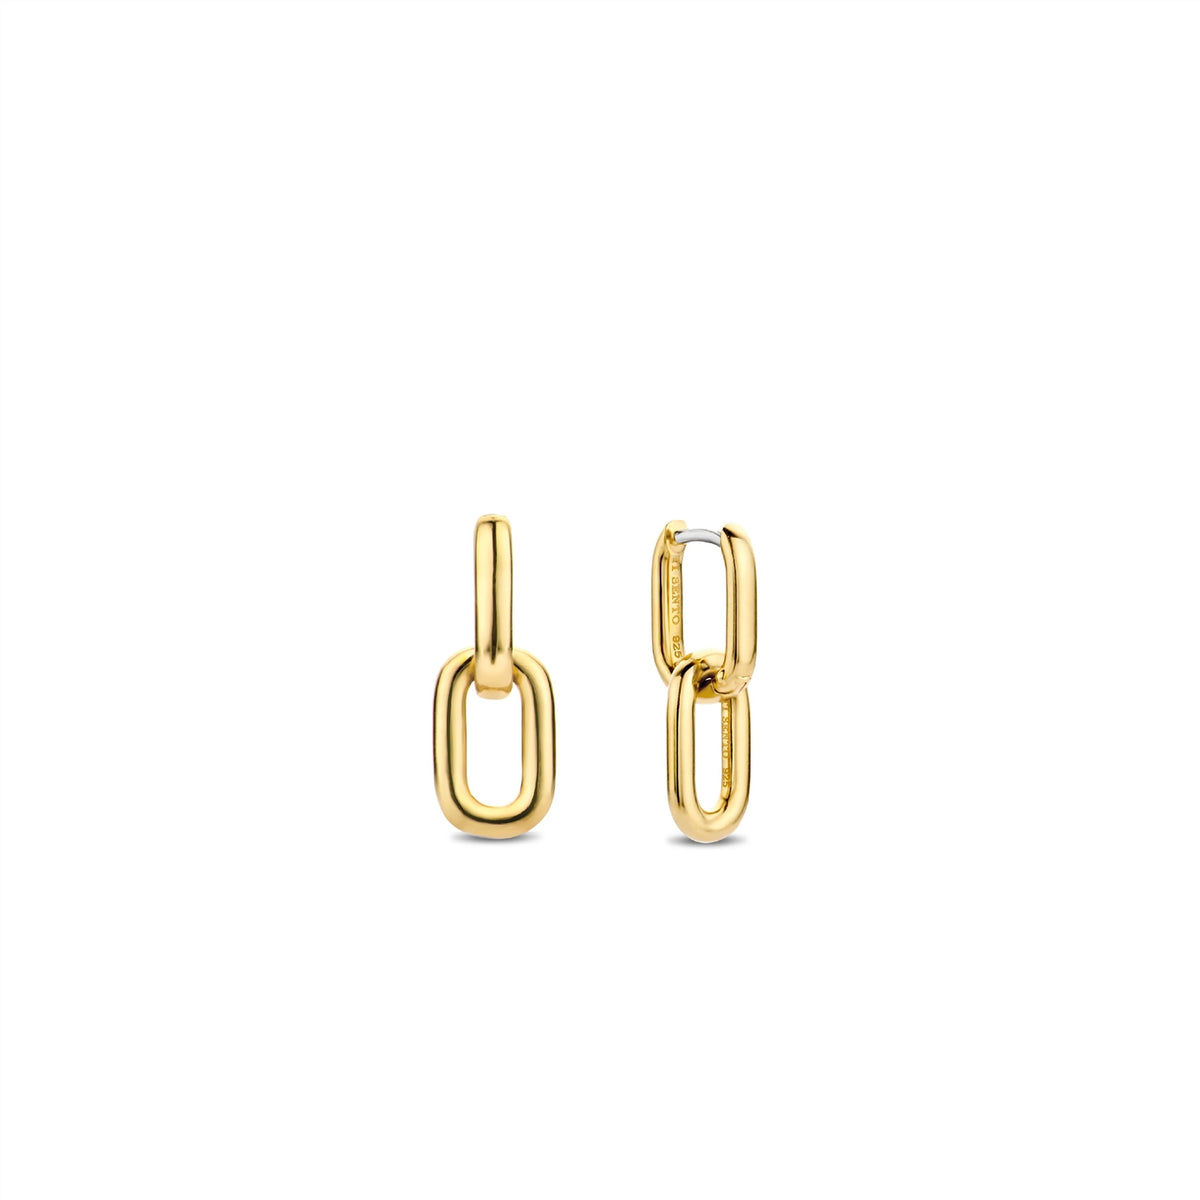 TI SENTO Sterling Silver Gold Tone Chain Link Earrings